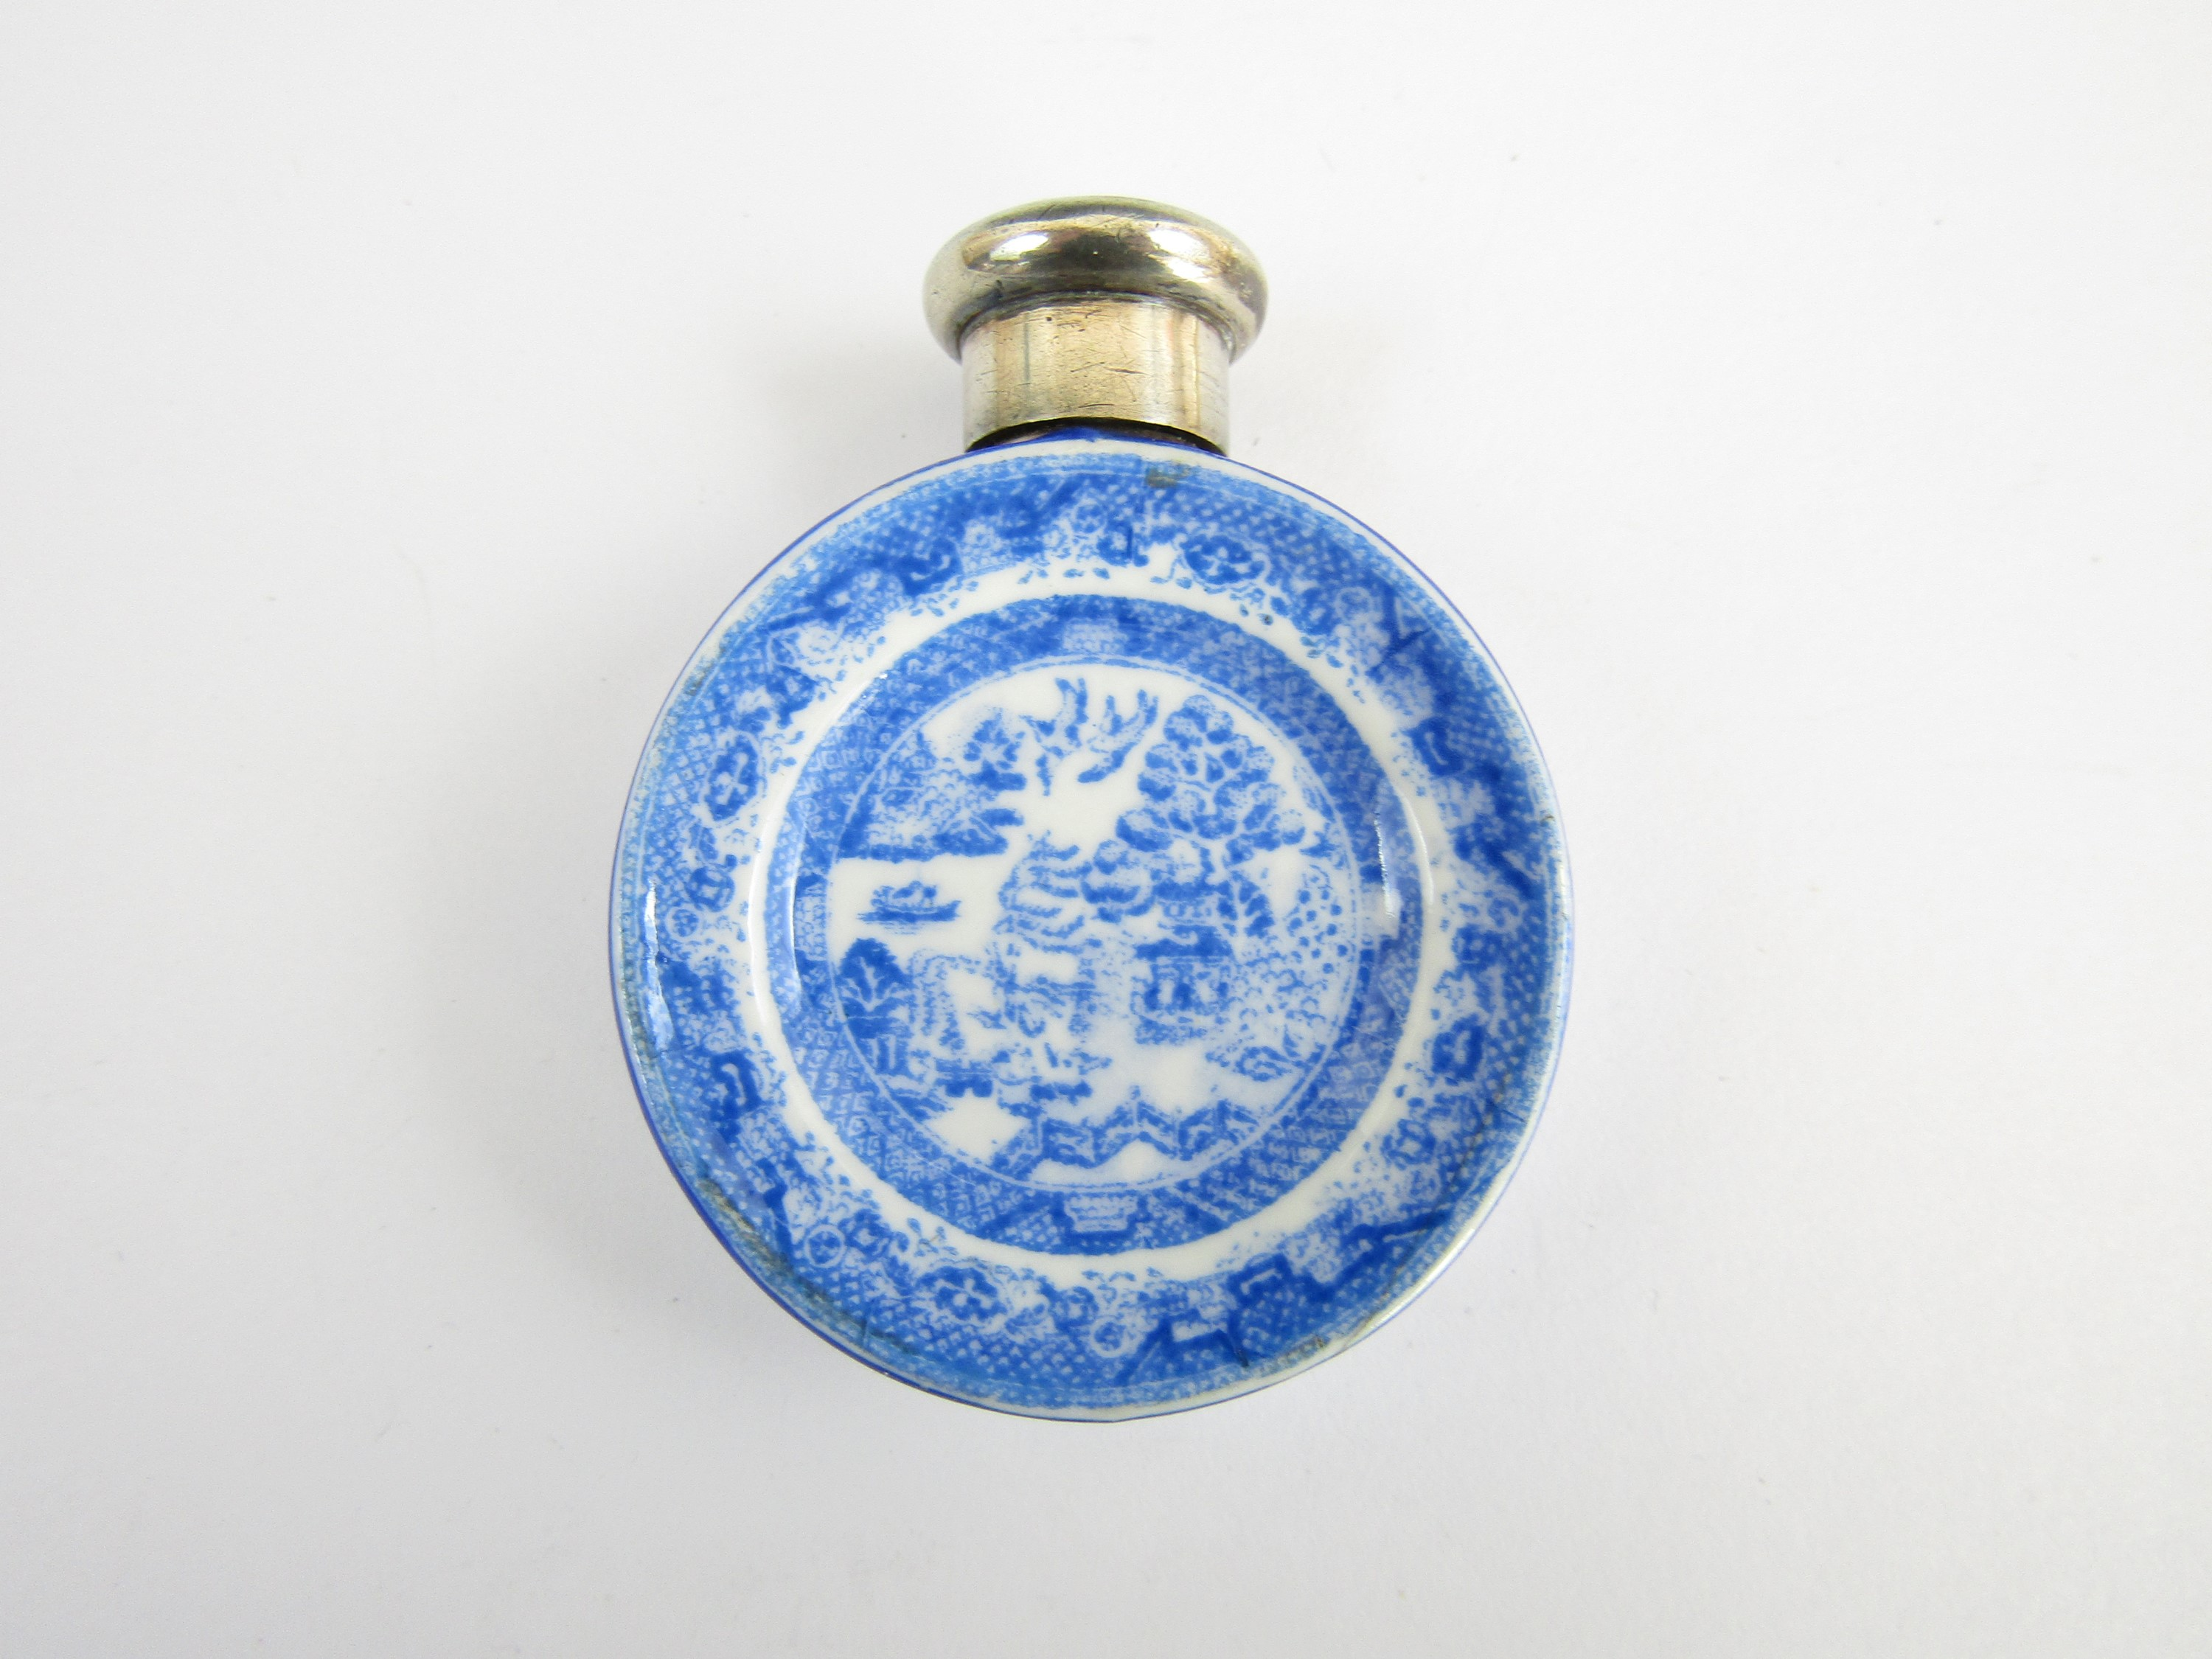 Lot 54 - A silver mounted Samson Mordan blue and white transfer-printed earthenware scent bottle (a/f)